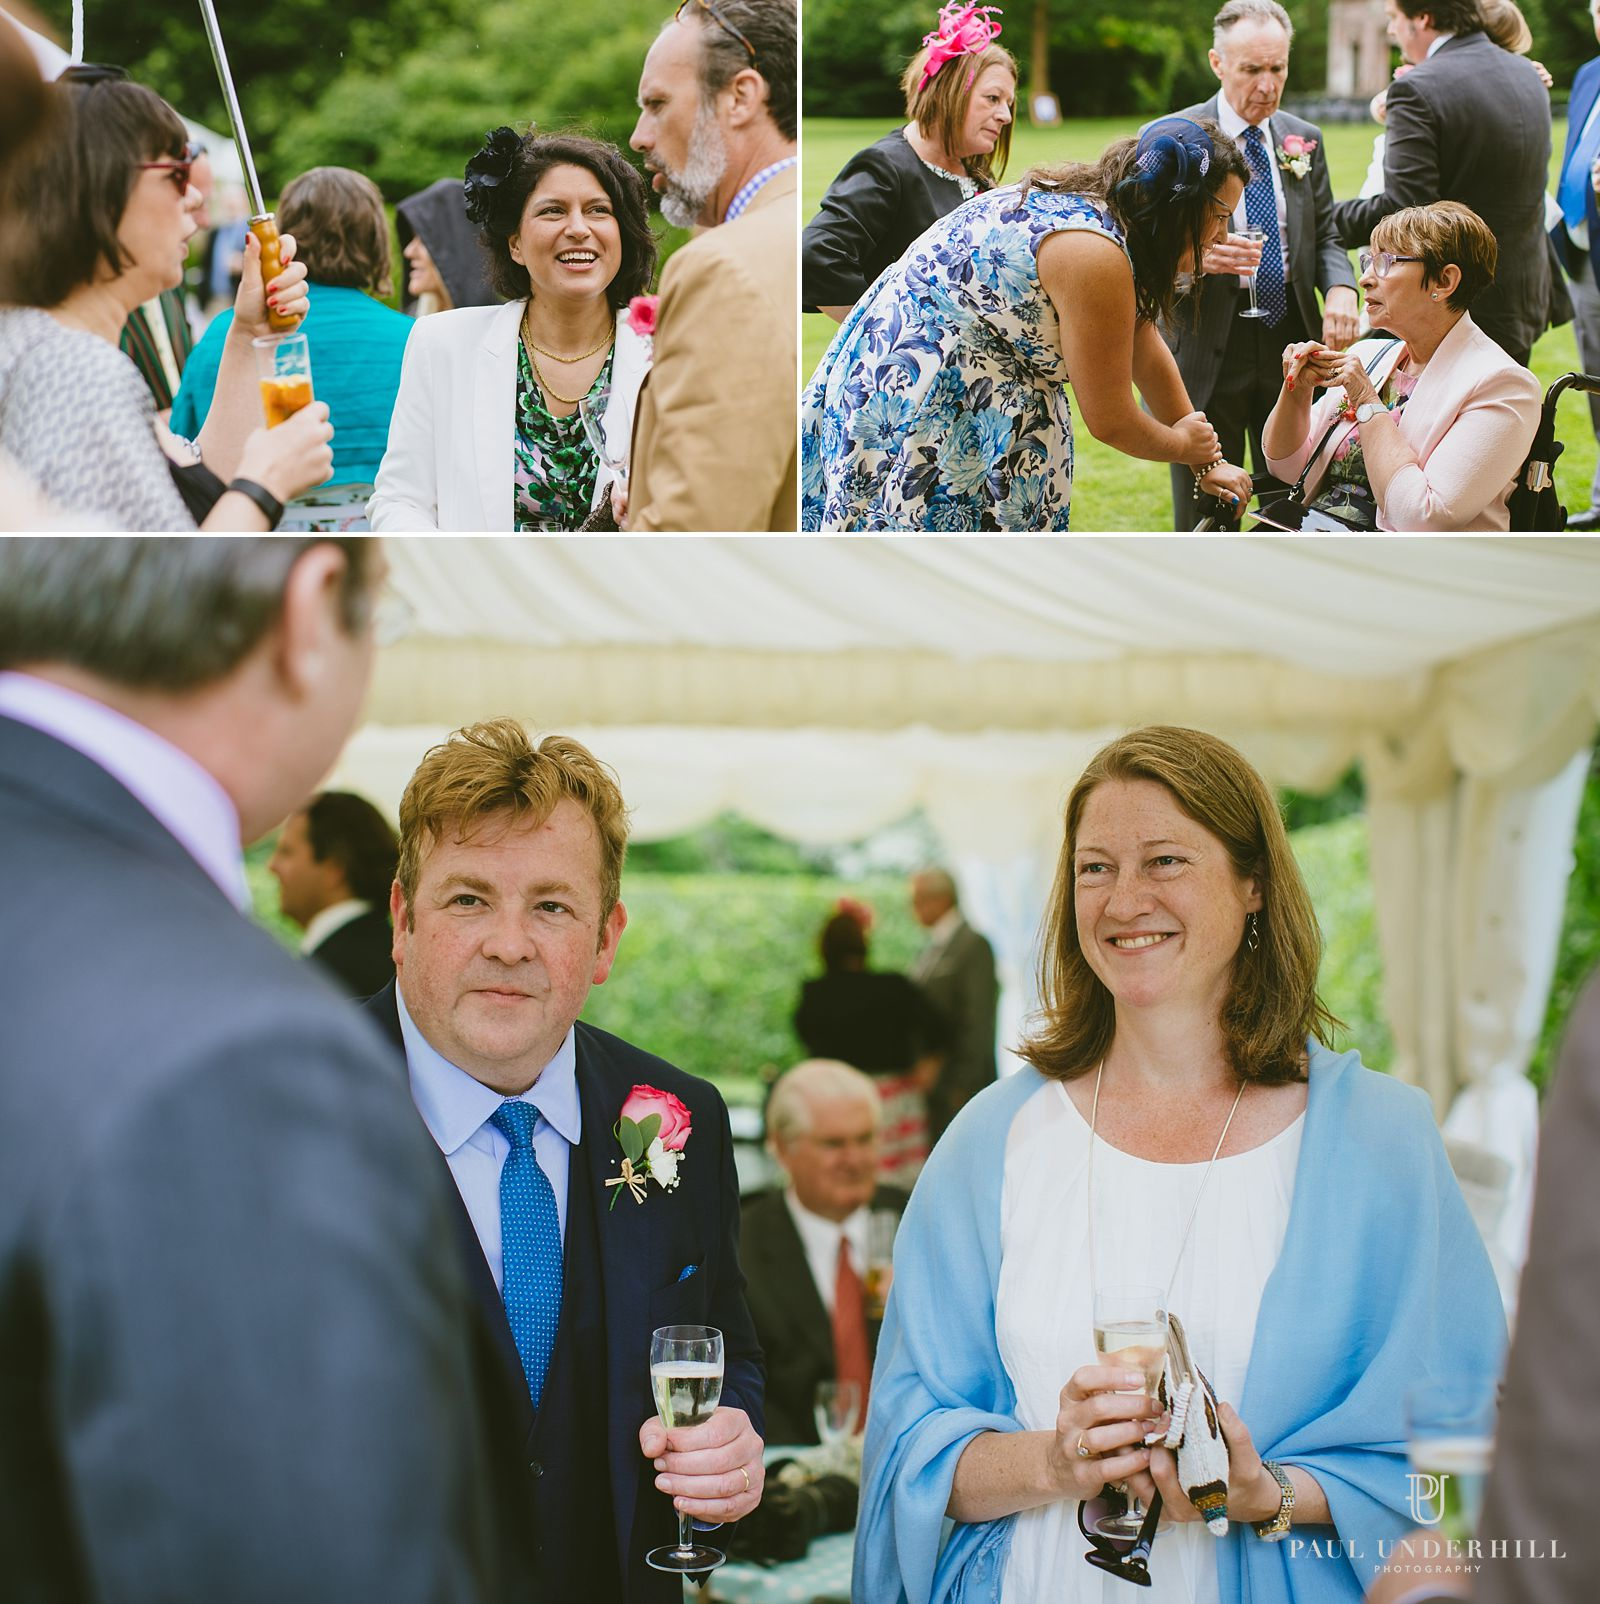 Reportage photography wedding guests